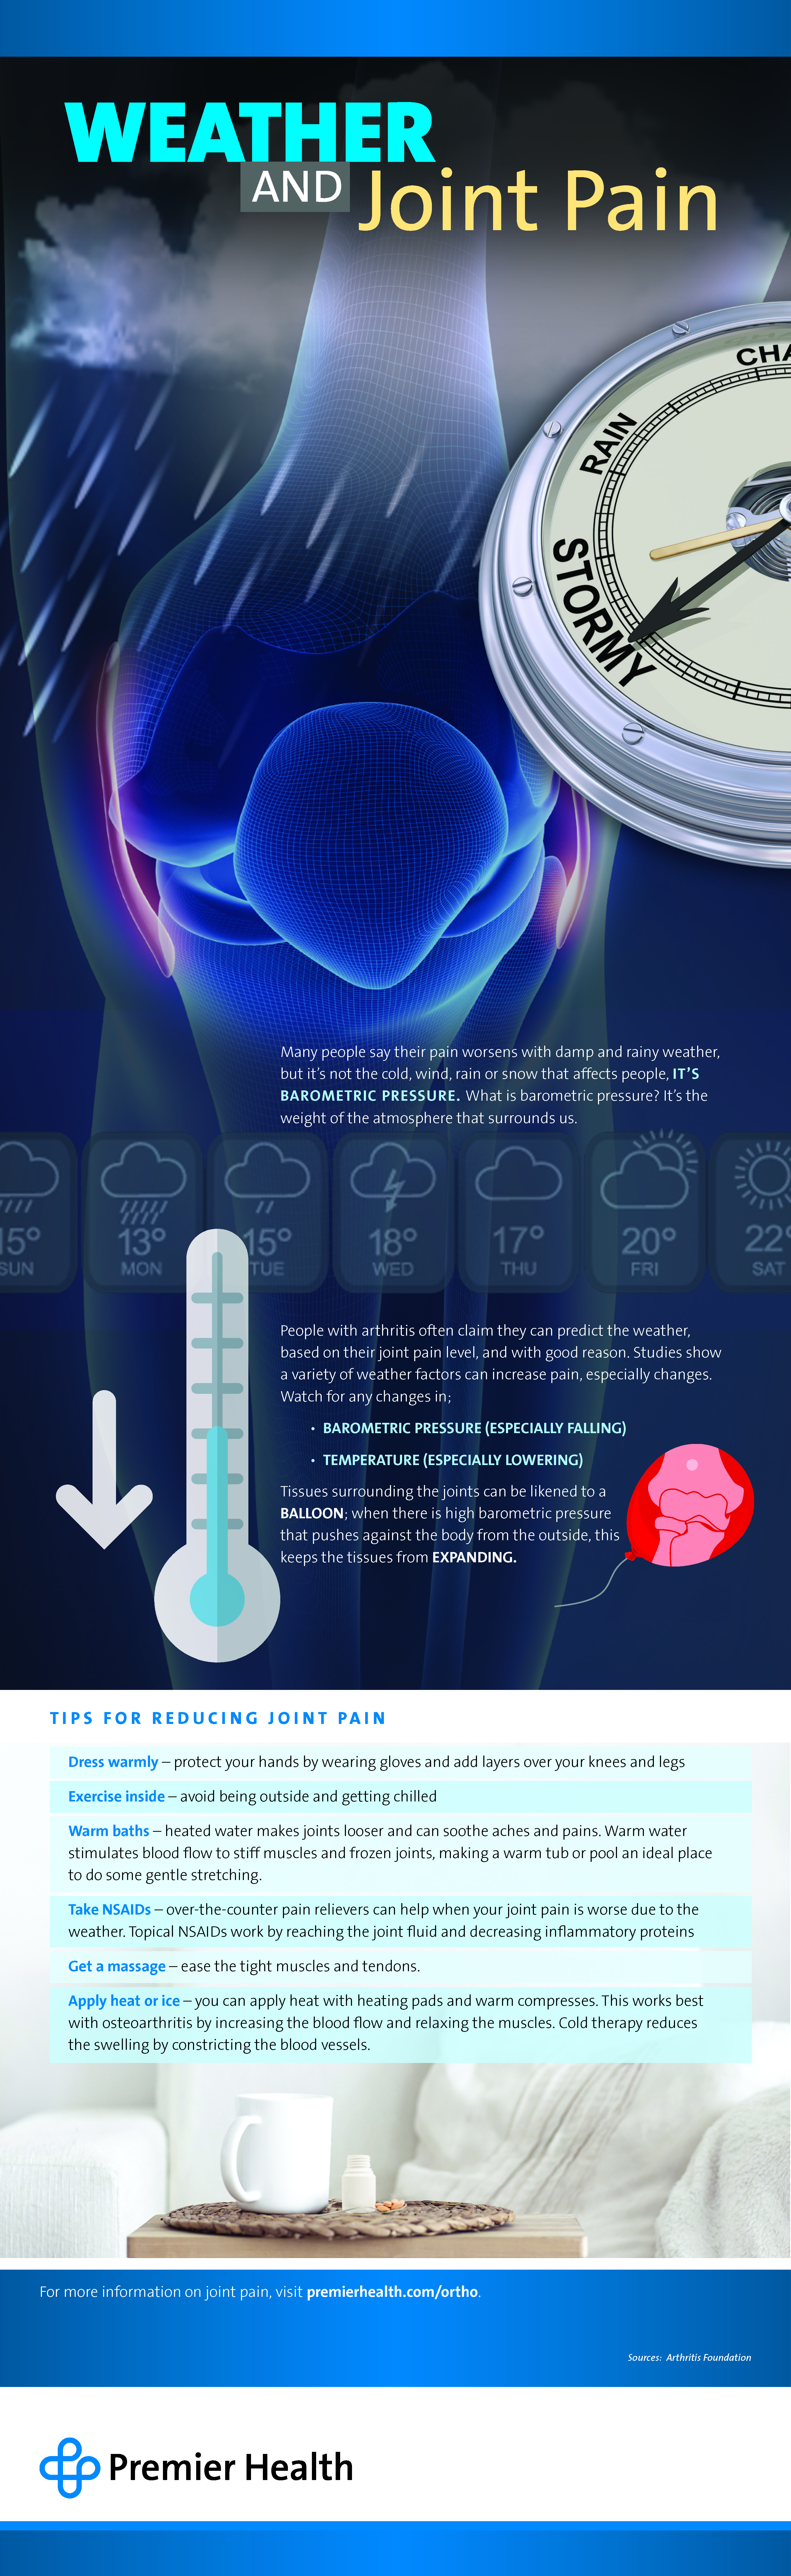 Weather and Joint Pain Infographic